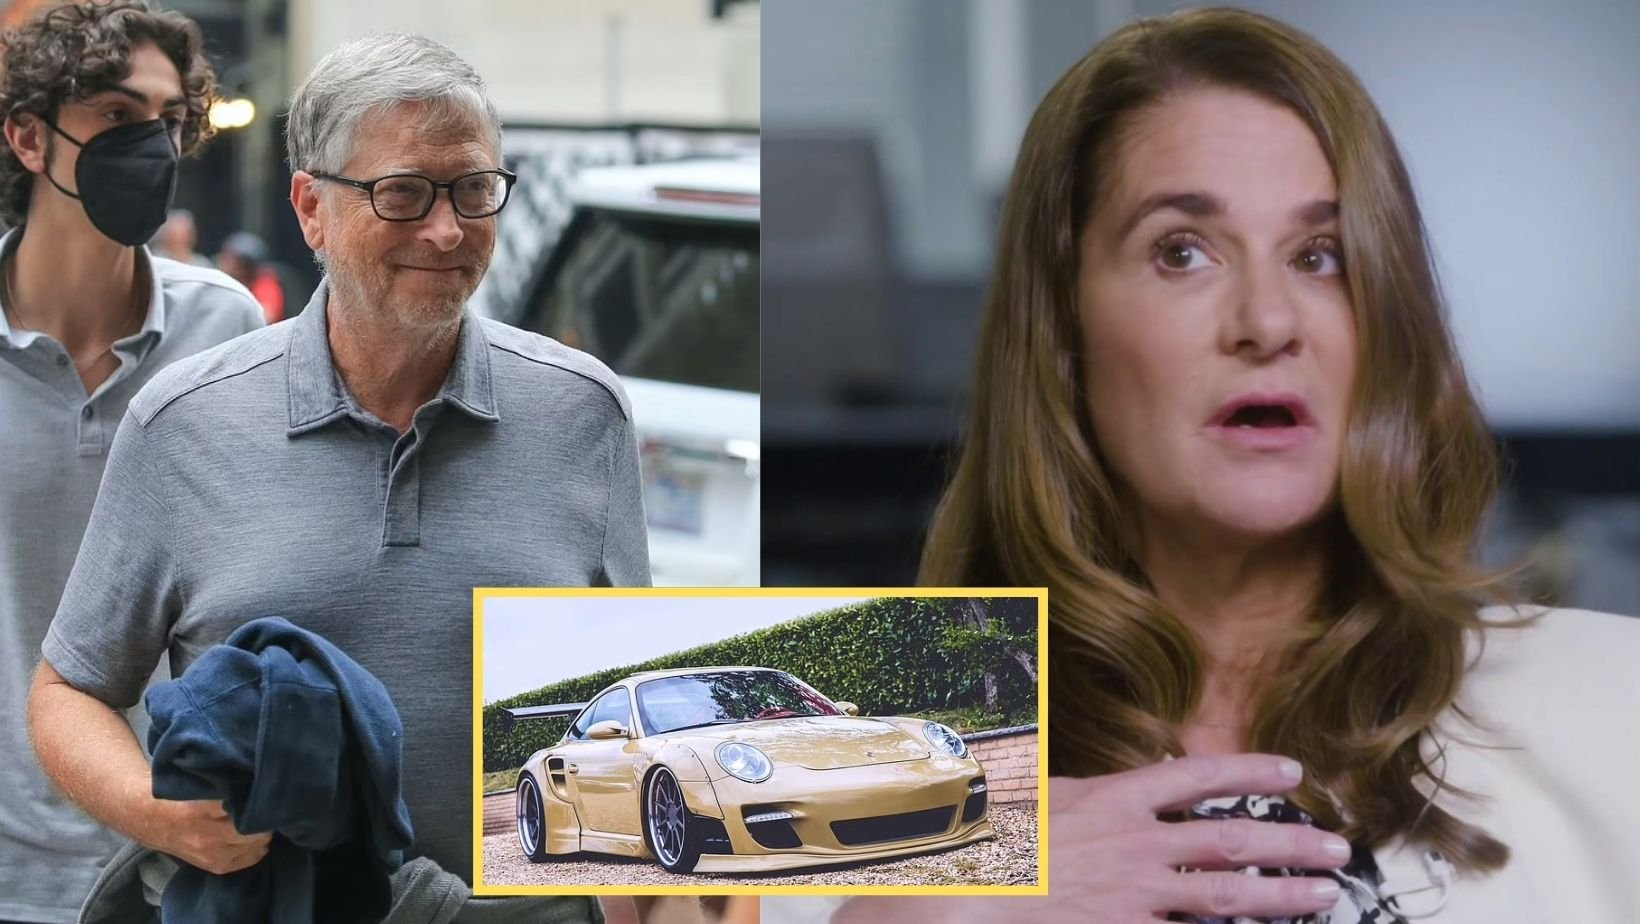 cover 1.jpg?resize=1200,630 - Bill Gates Mysteriously Disappears At Work In A Golden Brown Porsche To Meet Women, Report Claims